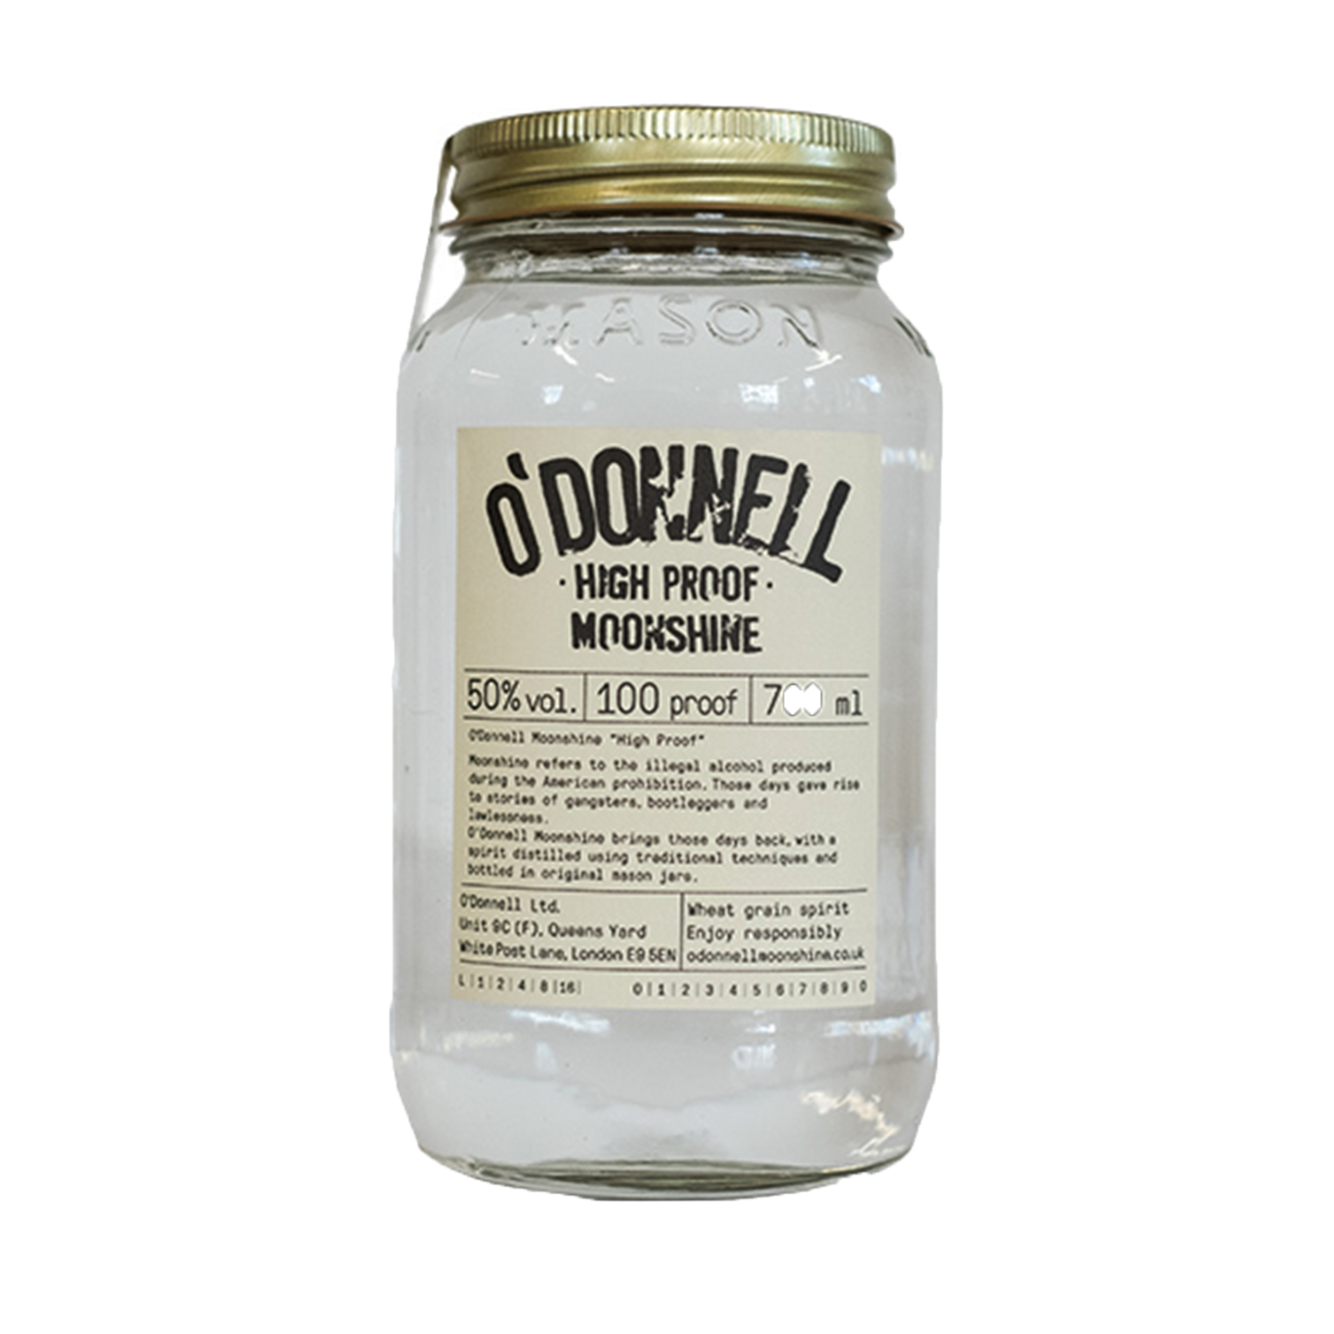 O'Donnell High Proof Moonshine